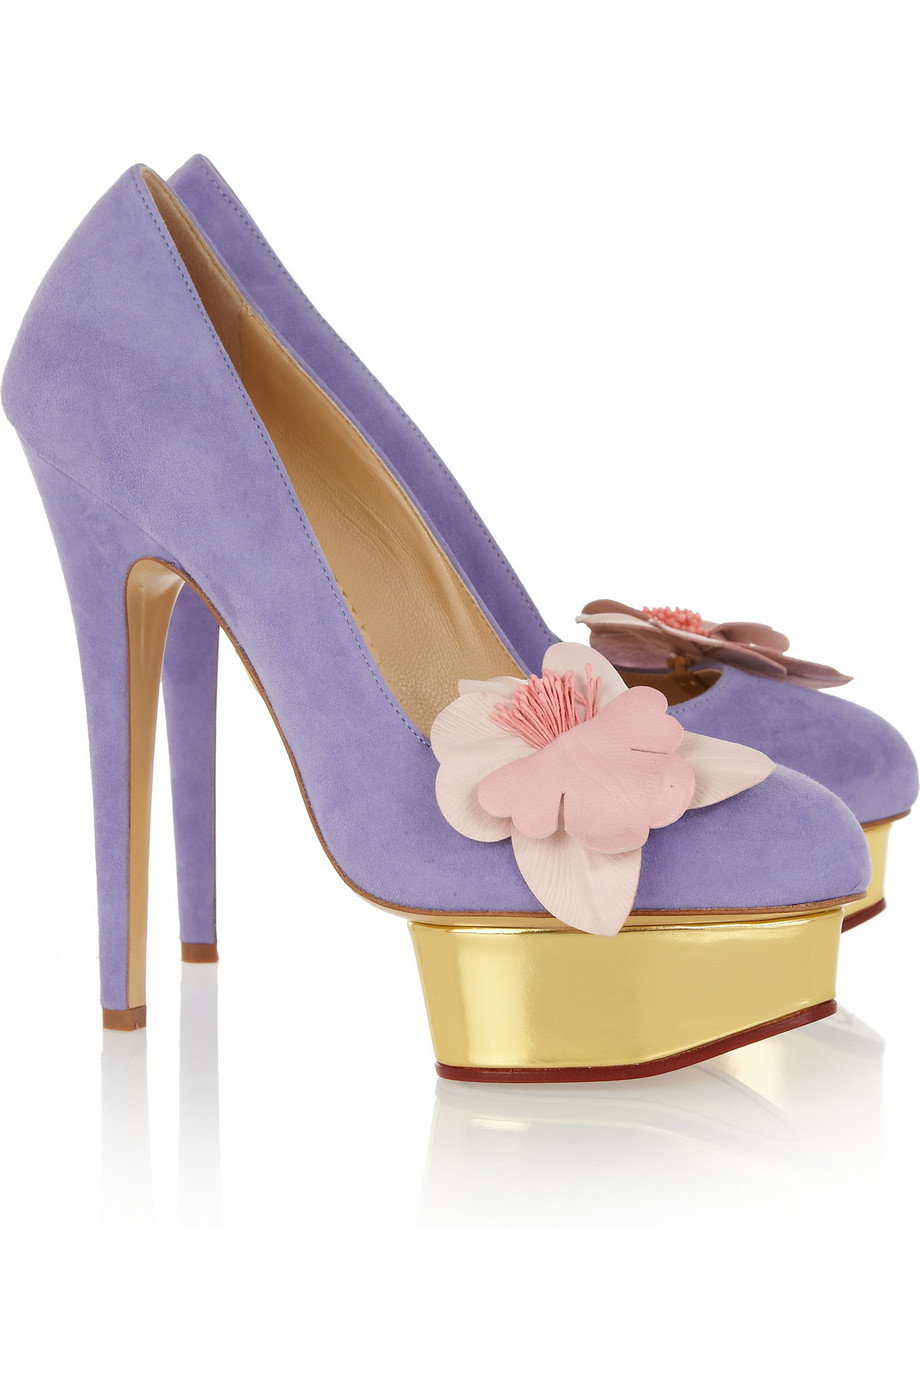 charlotte olympia dolly suede platform pumps in purple gold lyst. Black Bedroom Furniture Sets. Home Design Ideas